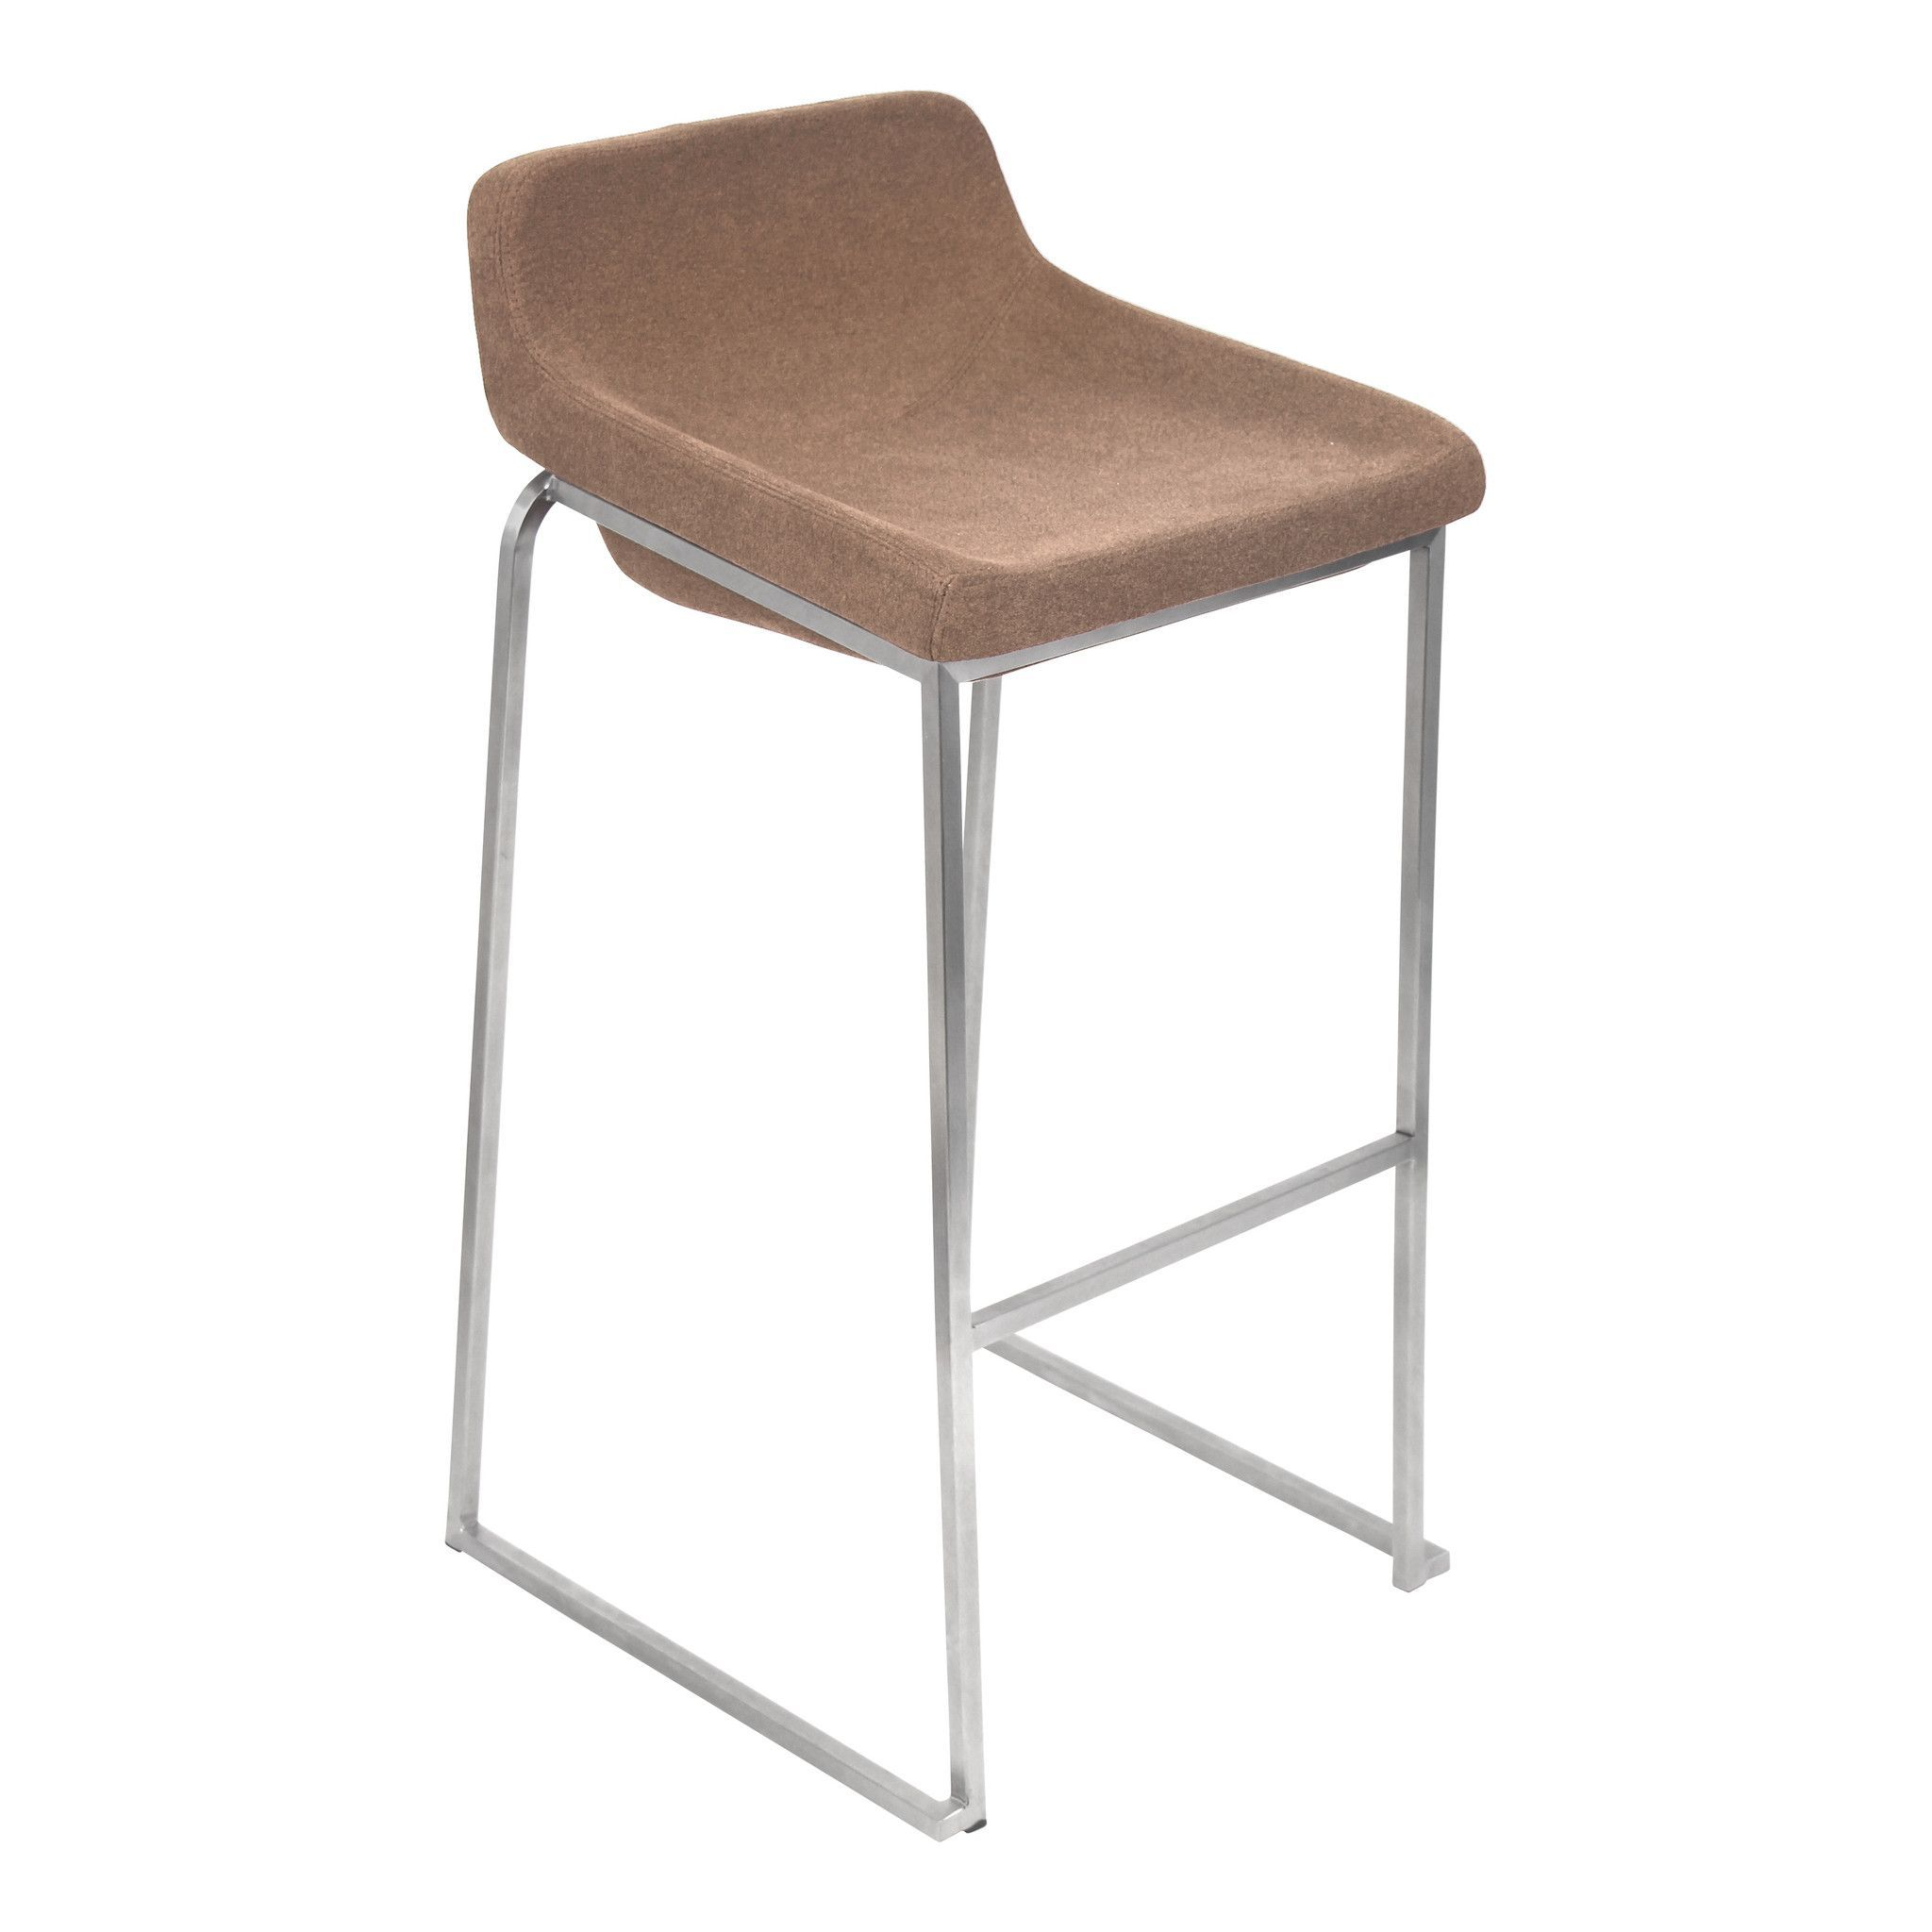 Drop In Bar Stool in Light Brown